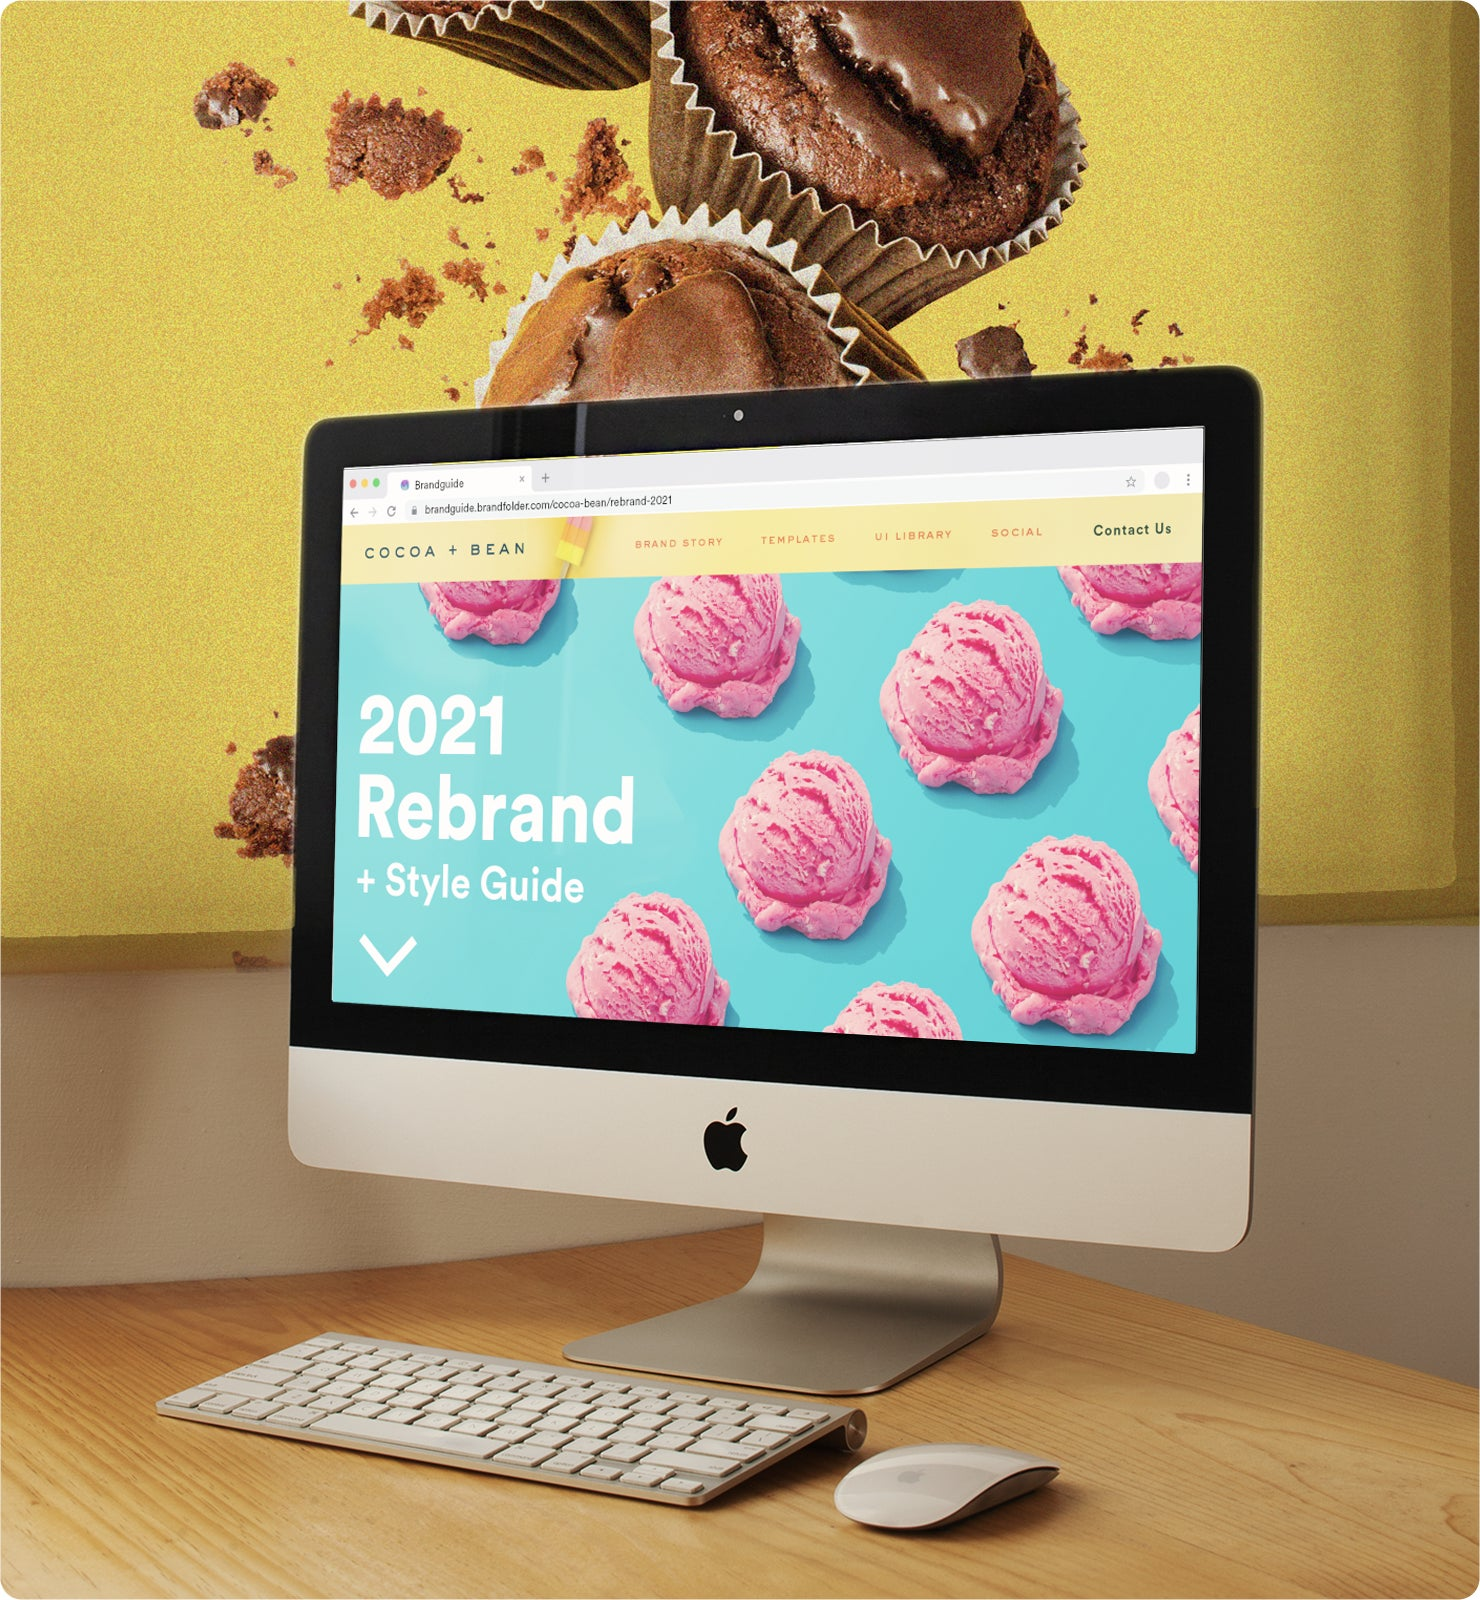 A large computer monitor showing a brightly colored blue and pink Cocoa + Bean Rebrand Style Guide